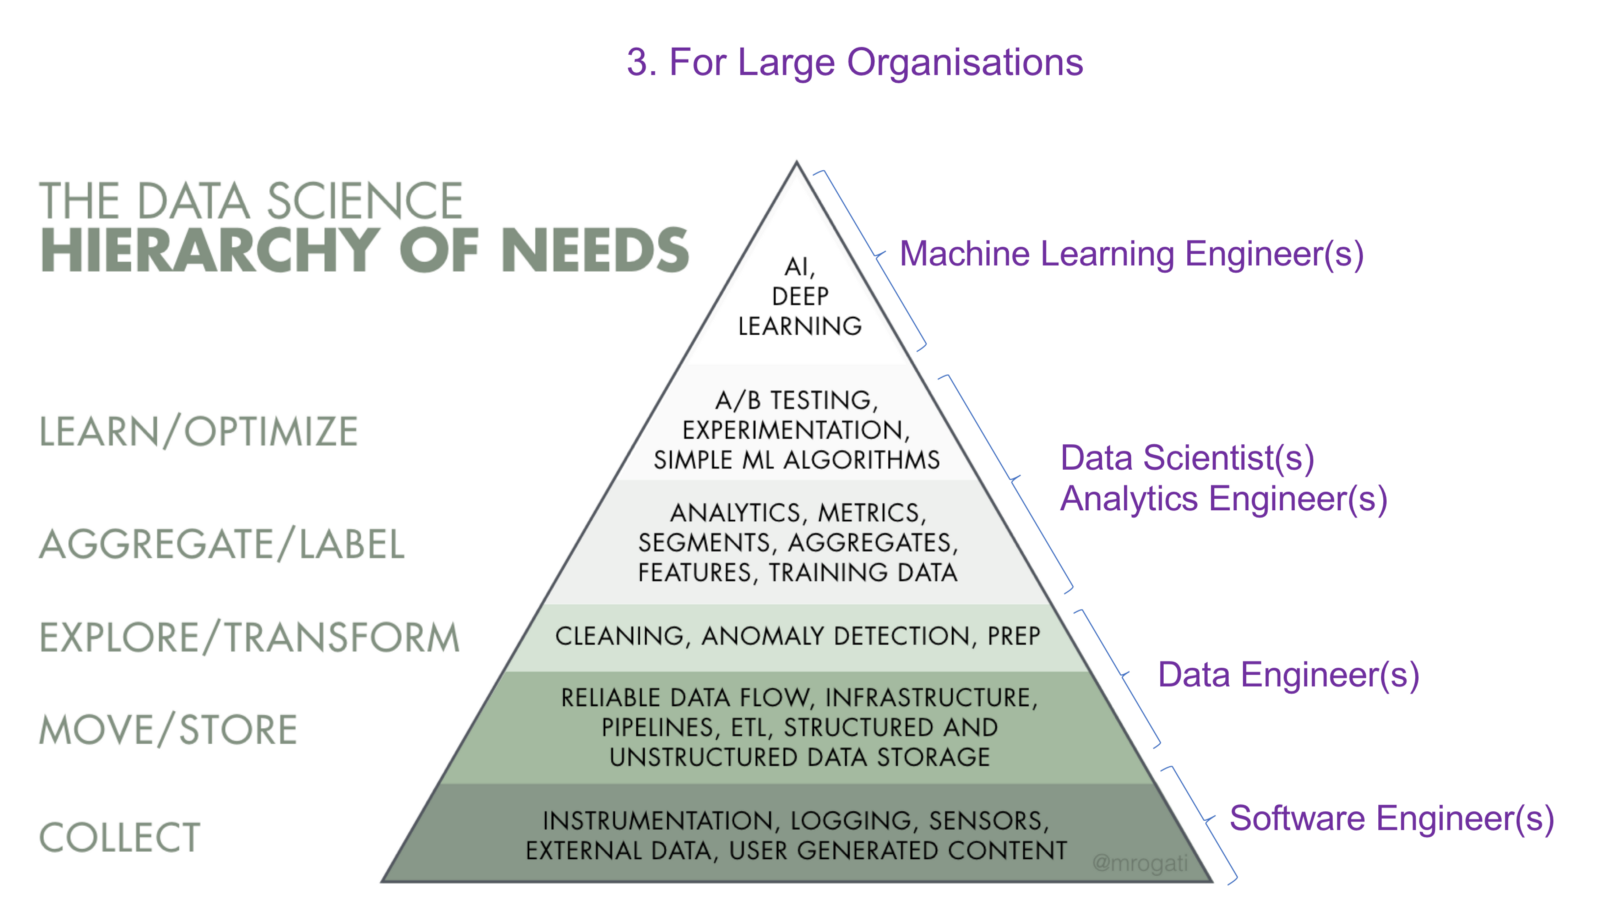 How to setup a Data Science function for your organisation